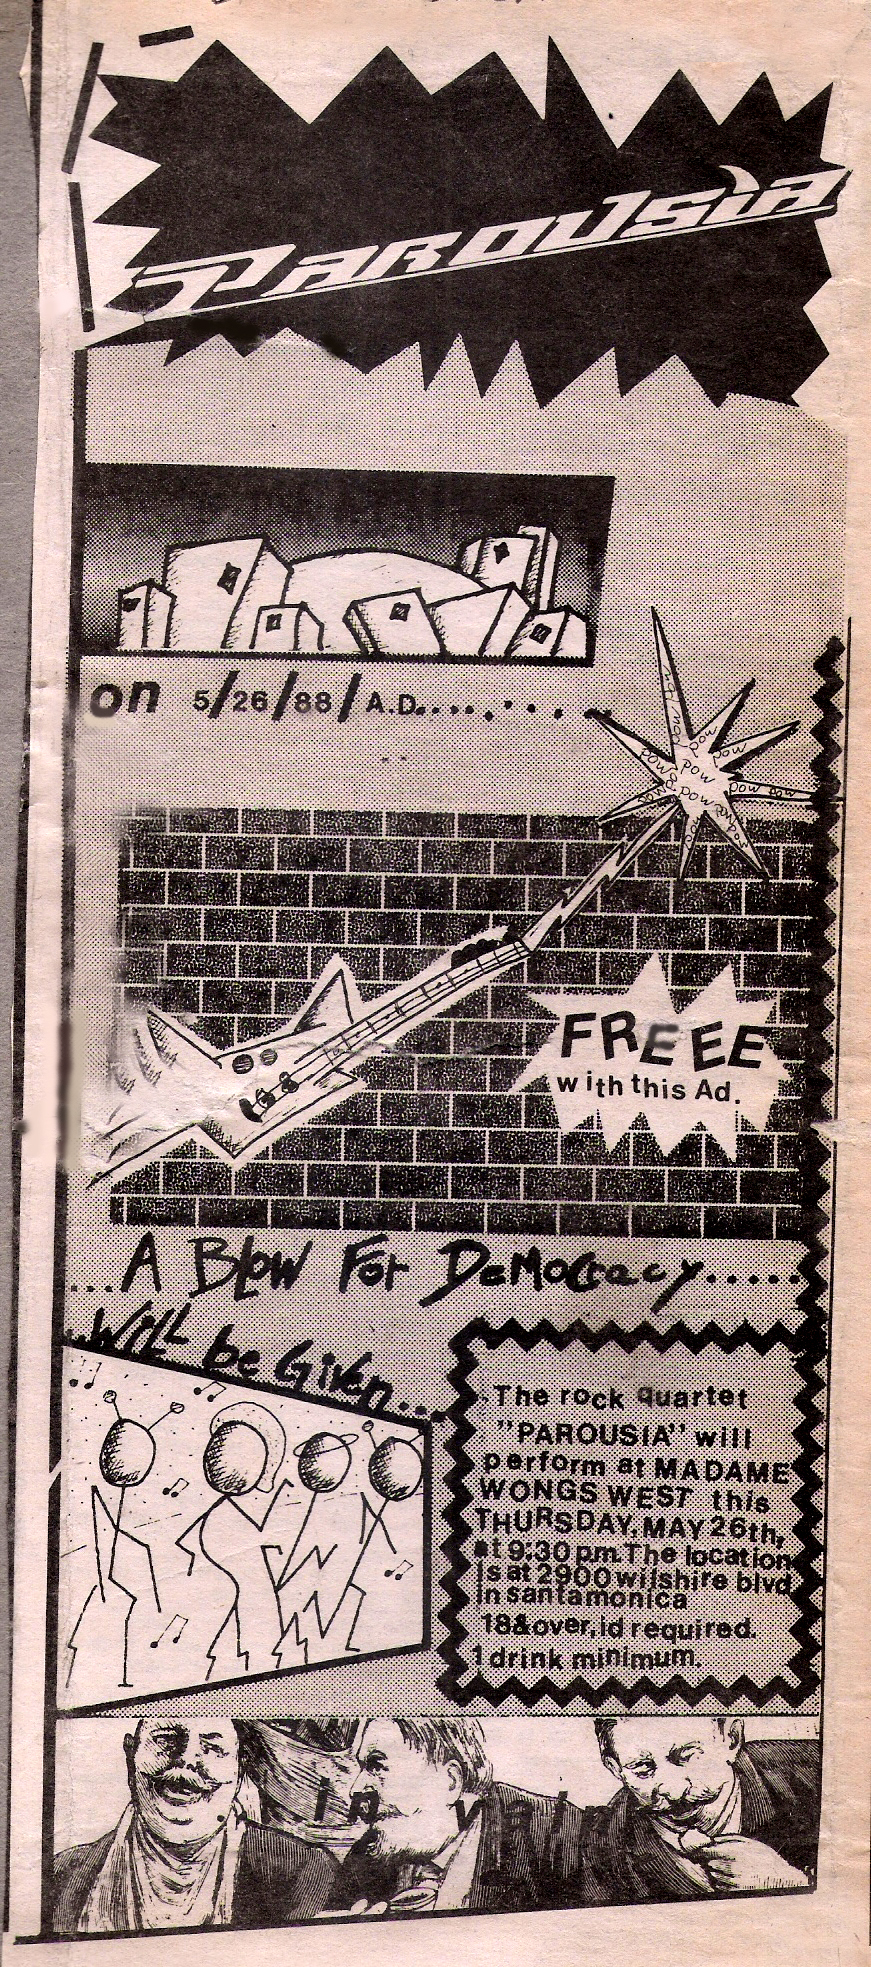 Rock City News Ad designed by R. Lowden - Madame Wong's West - May 26, 1988